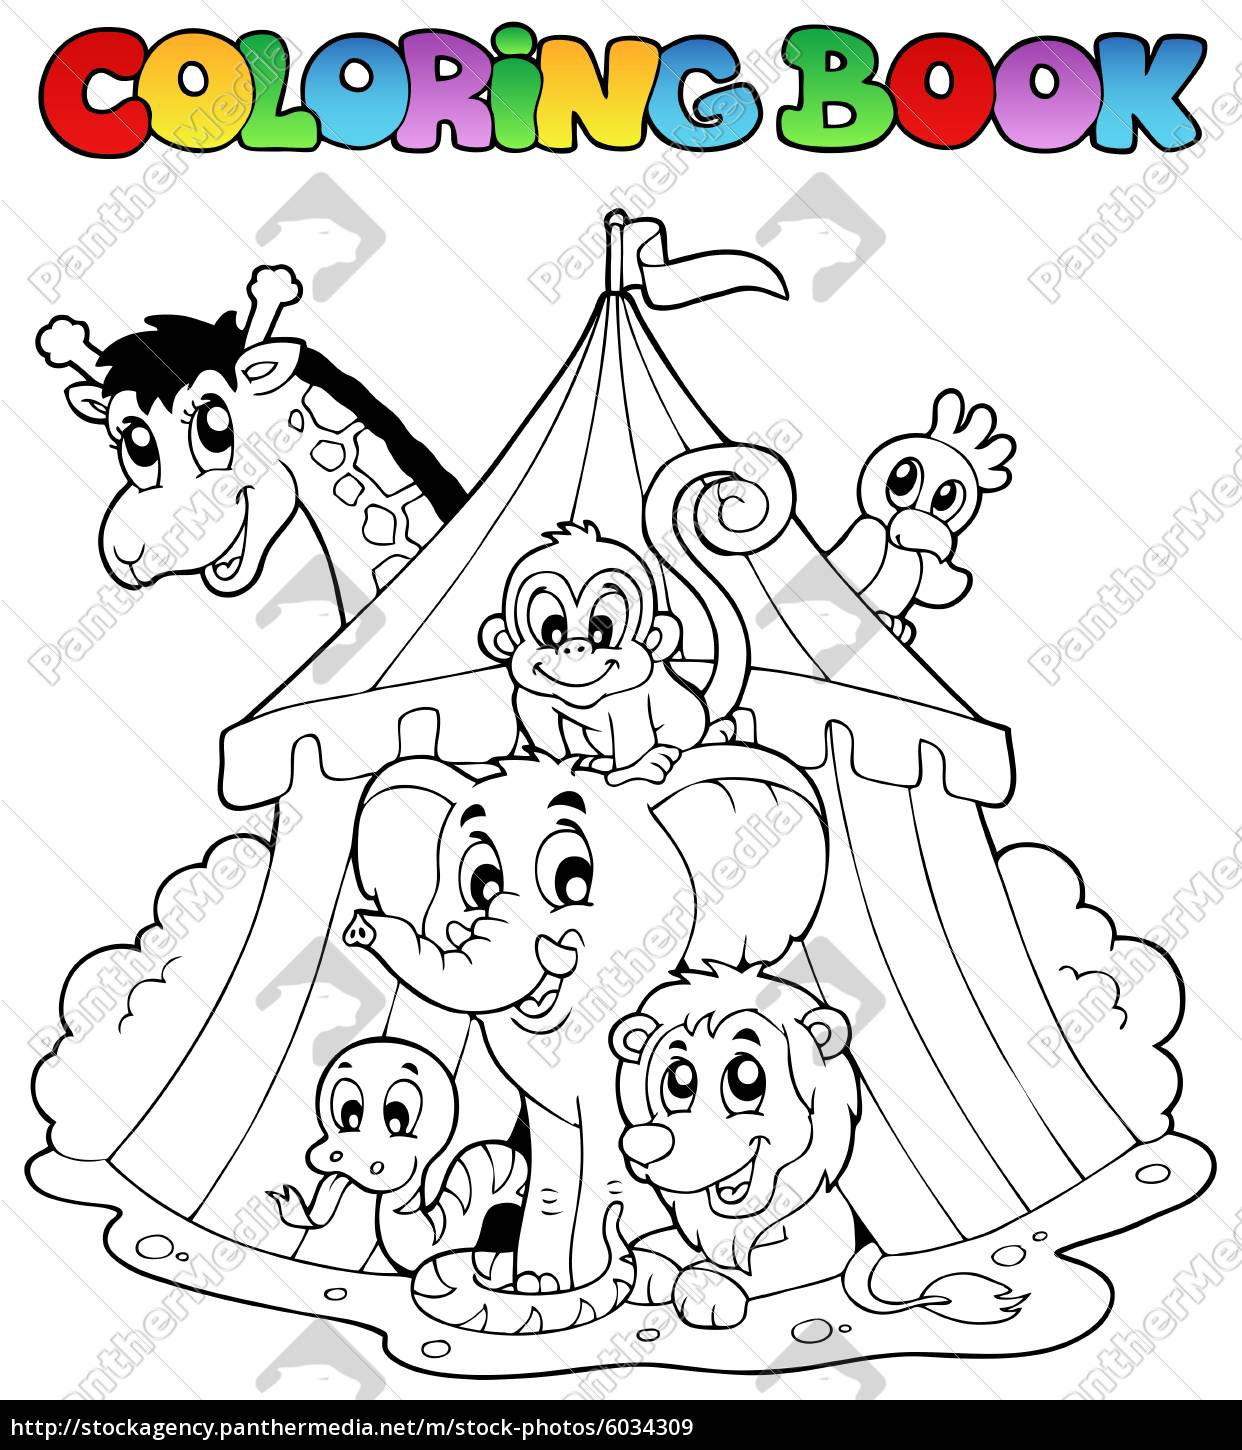 coloring, book, animals, in, tent - 6034309